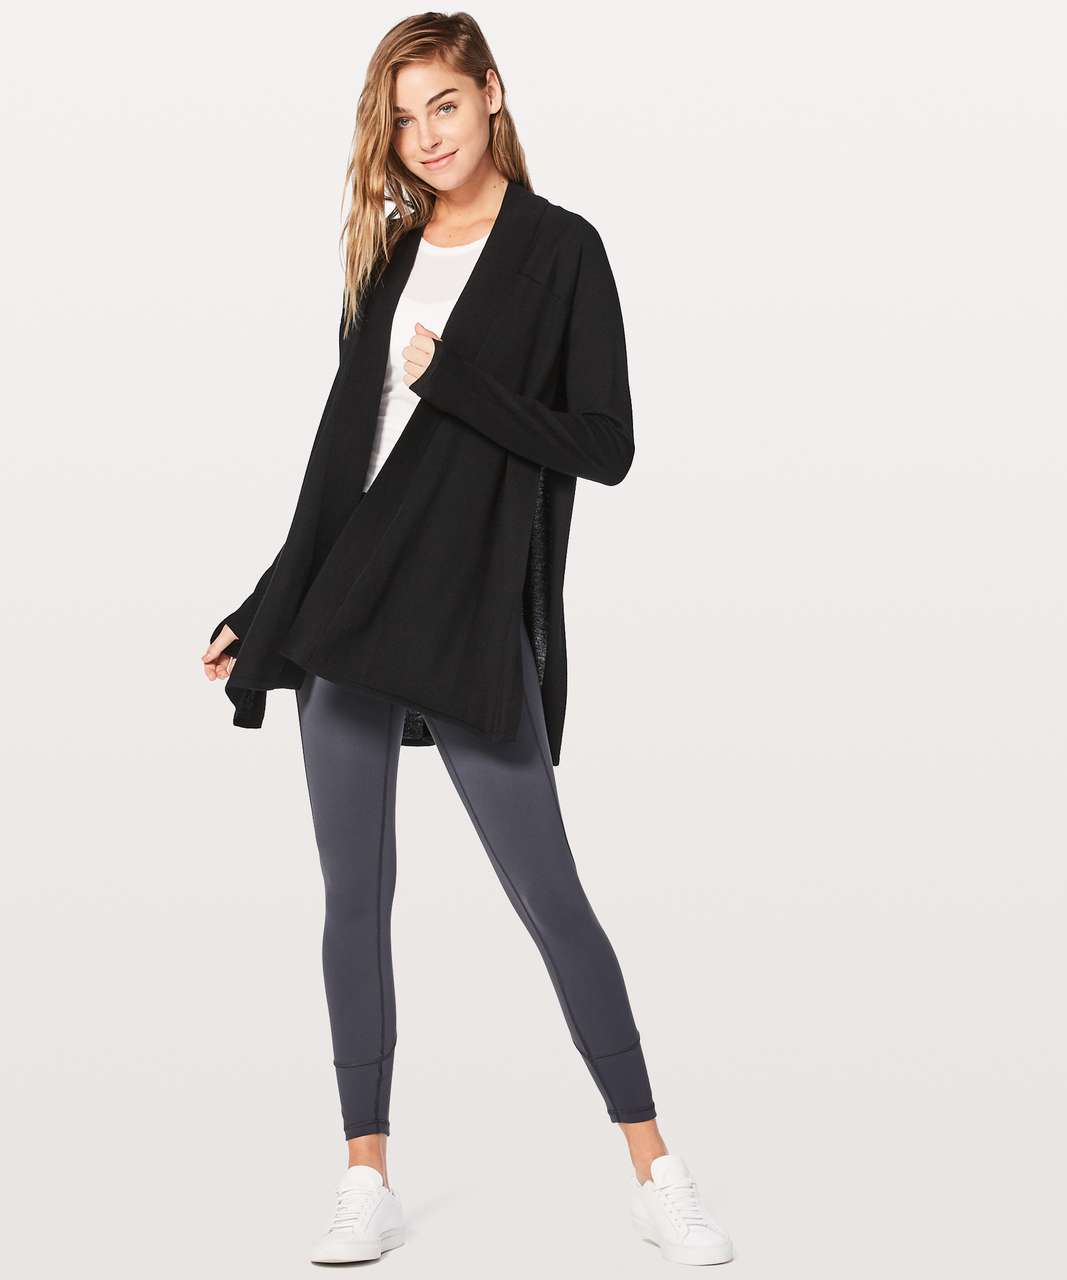 Lululemon Blissful Zen Sweater - Black